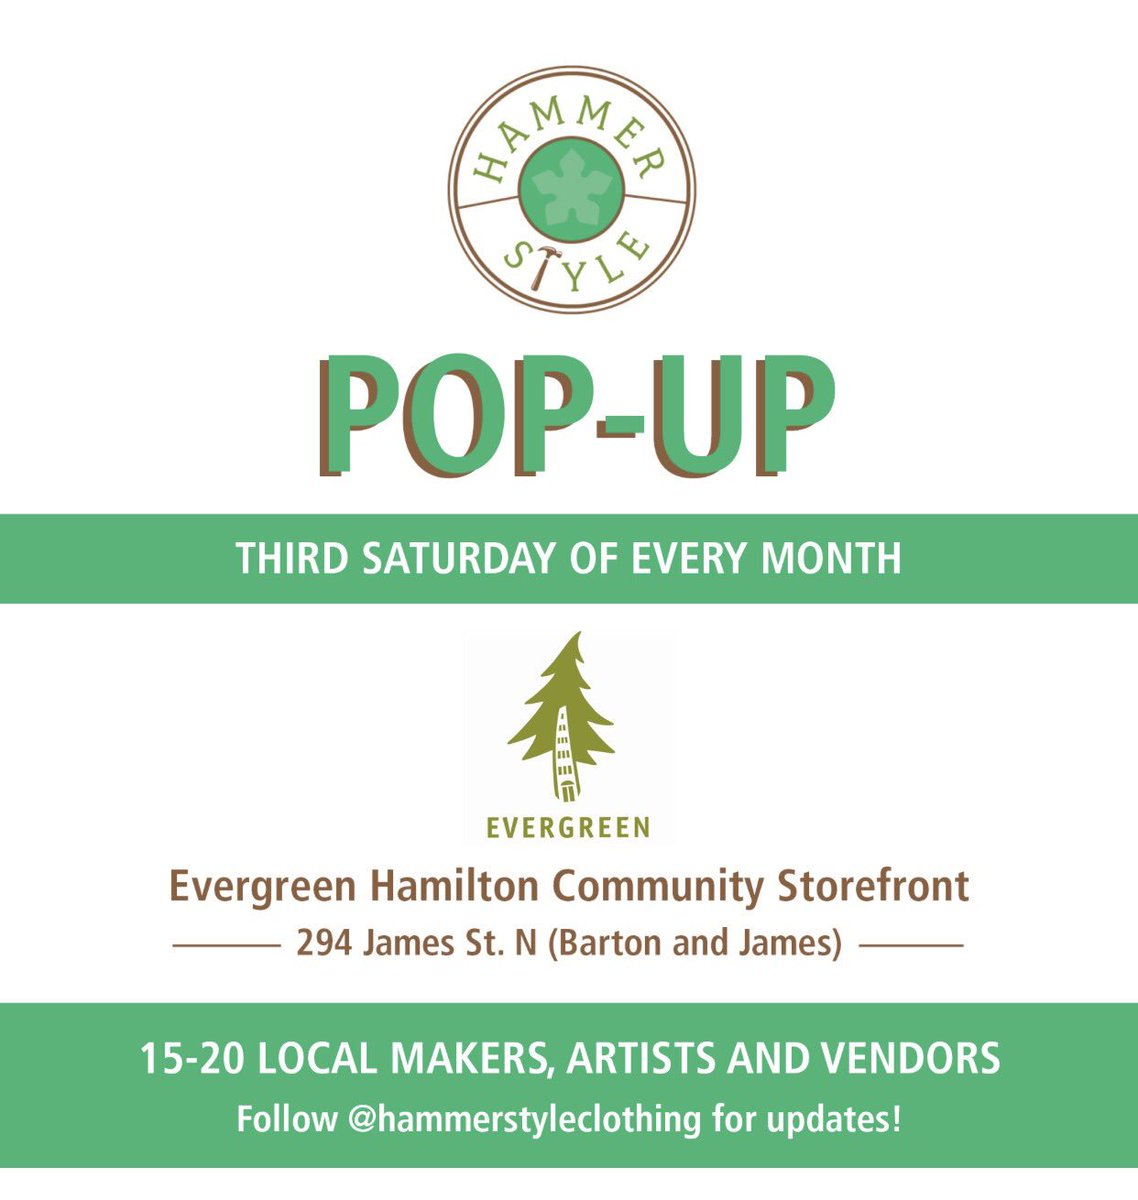 Pop by from 1-5pm today if your in the area of Barton and James N lots of unique vendors. #popupshop #handmade #repurposed #HamOnt <br>http://pic.twitter.com/7SPIXSNQY6